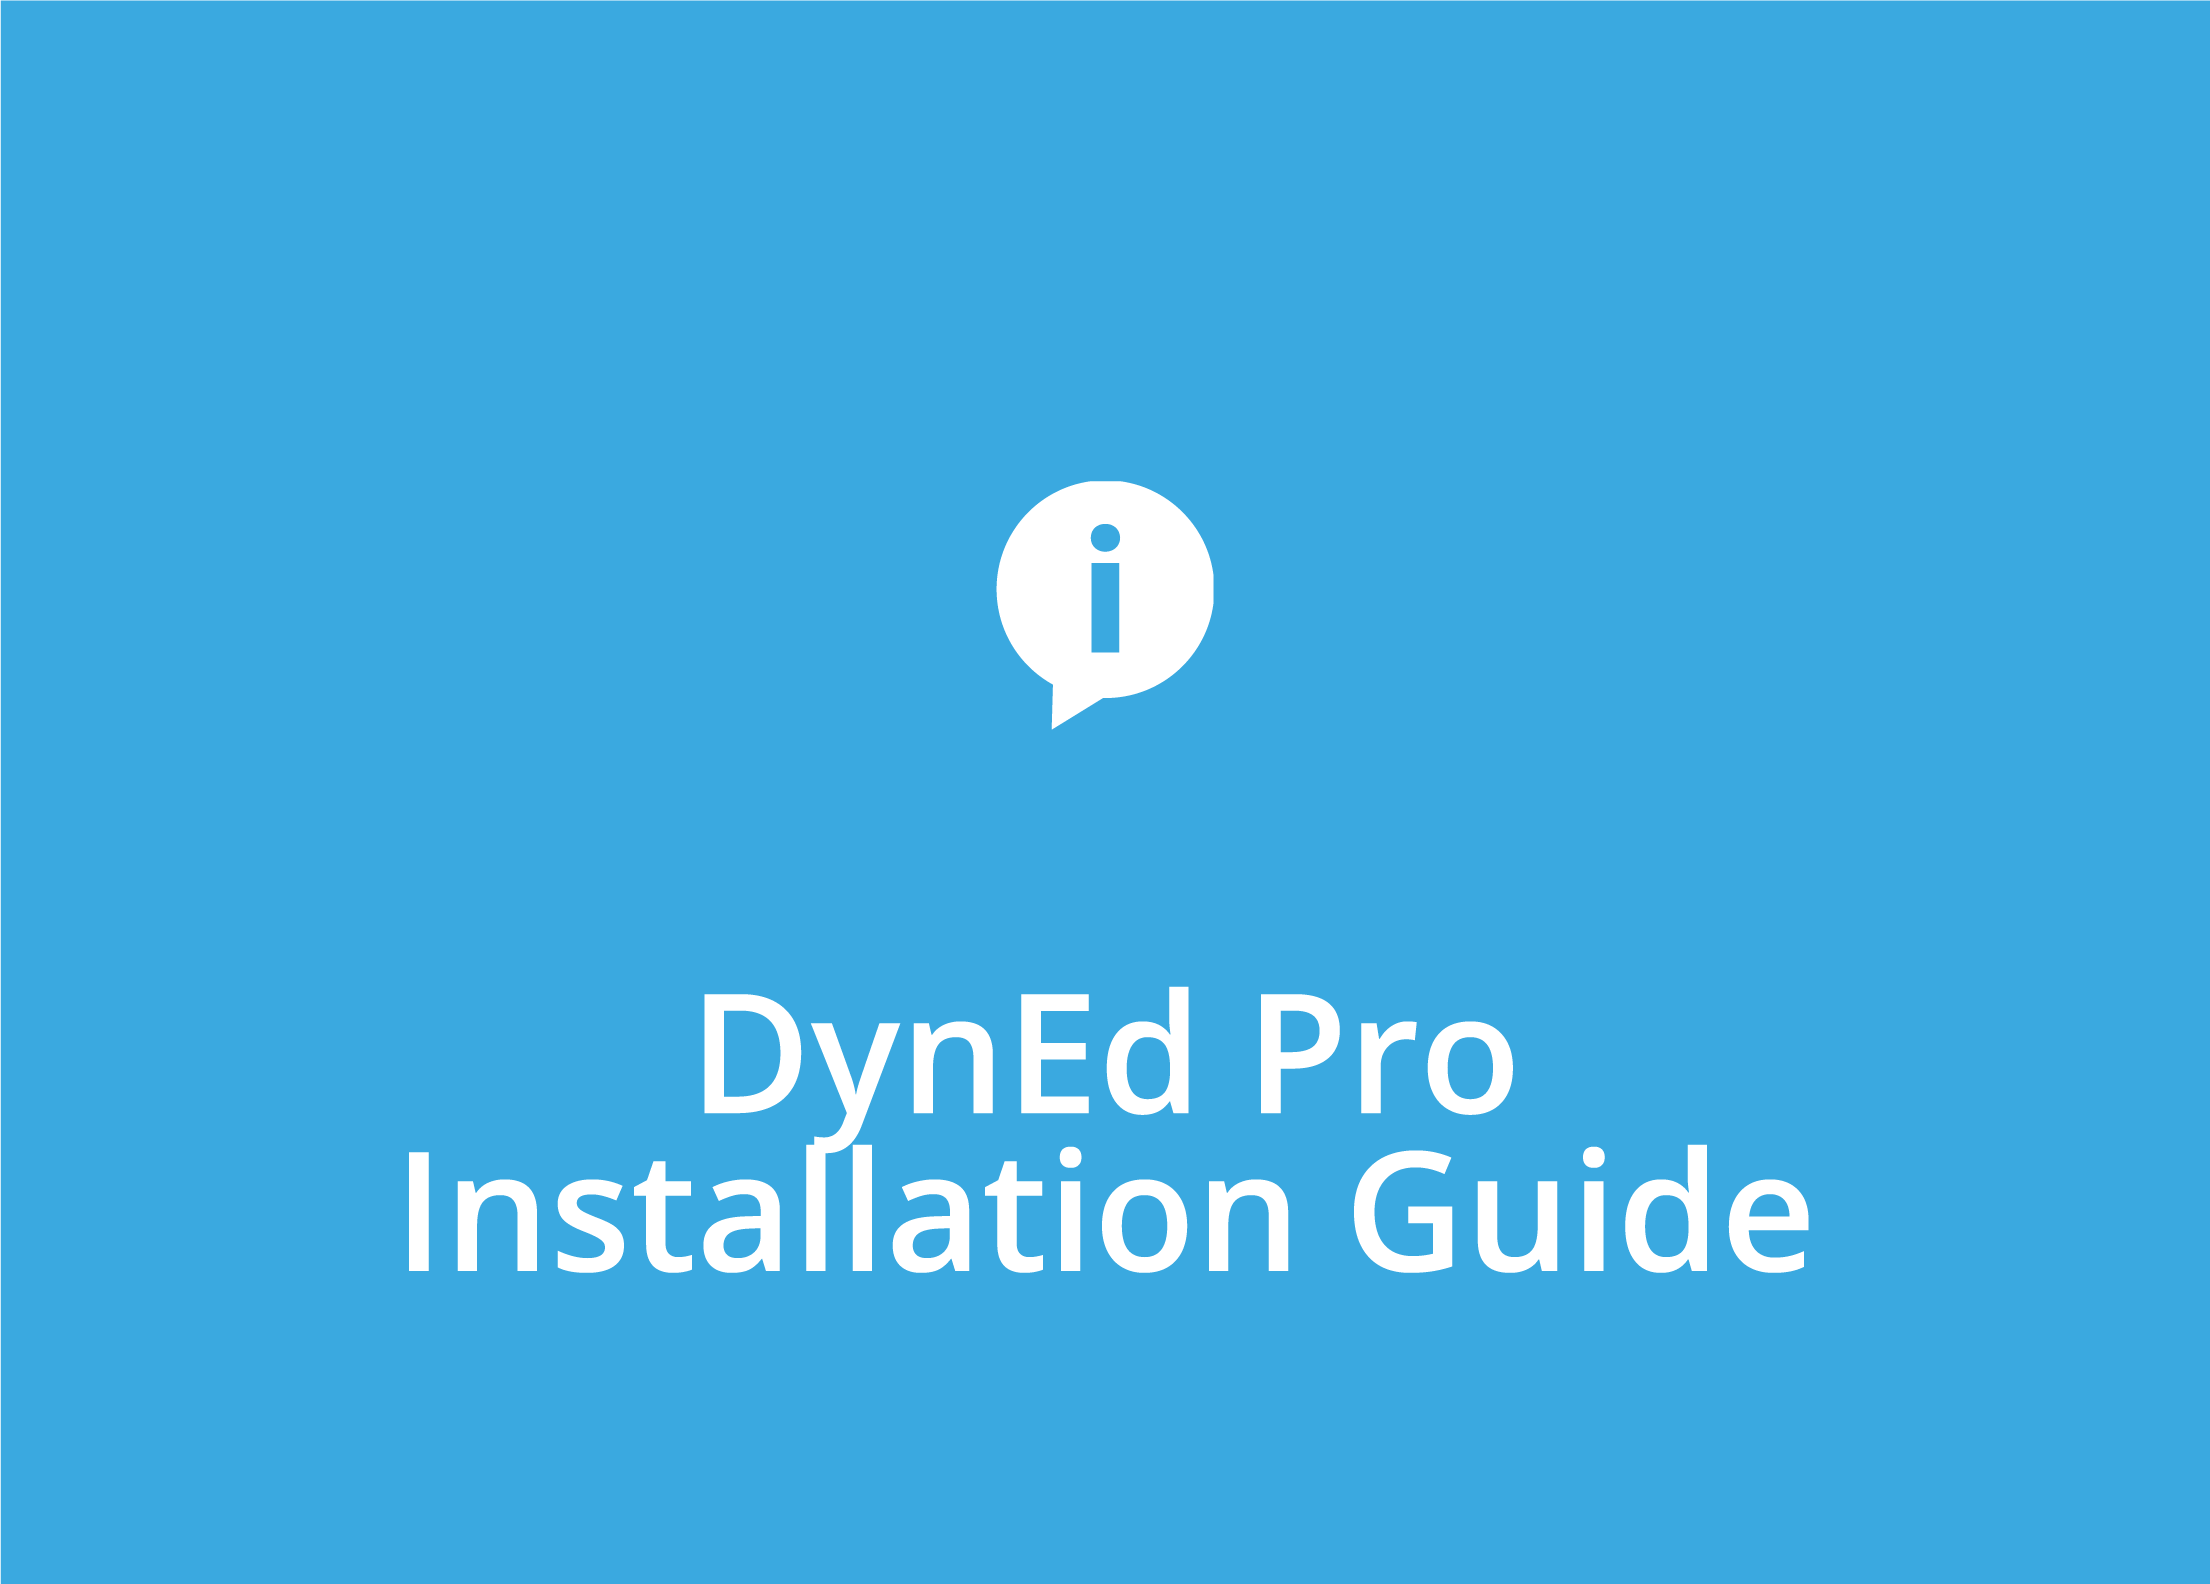 DynEd Pro Installation Guide